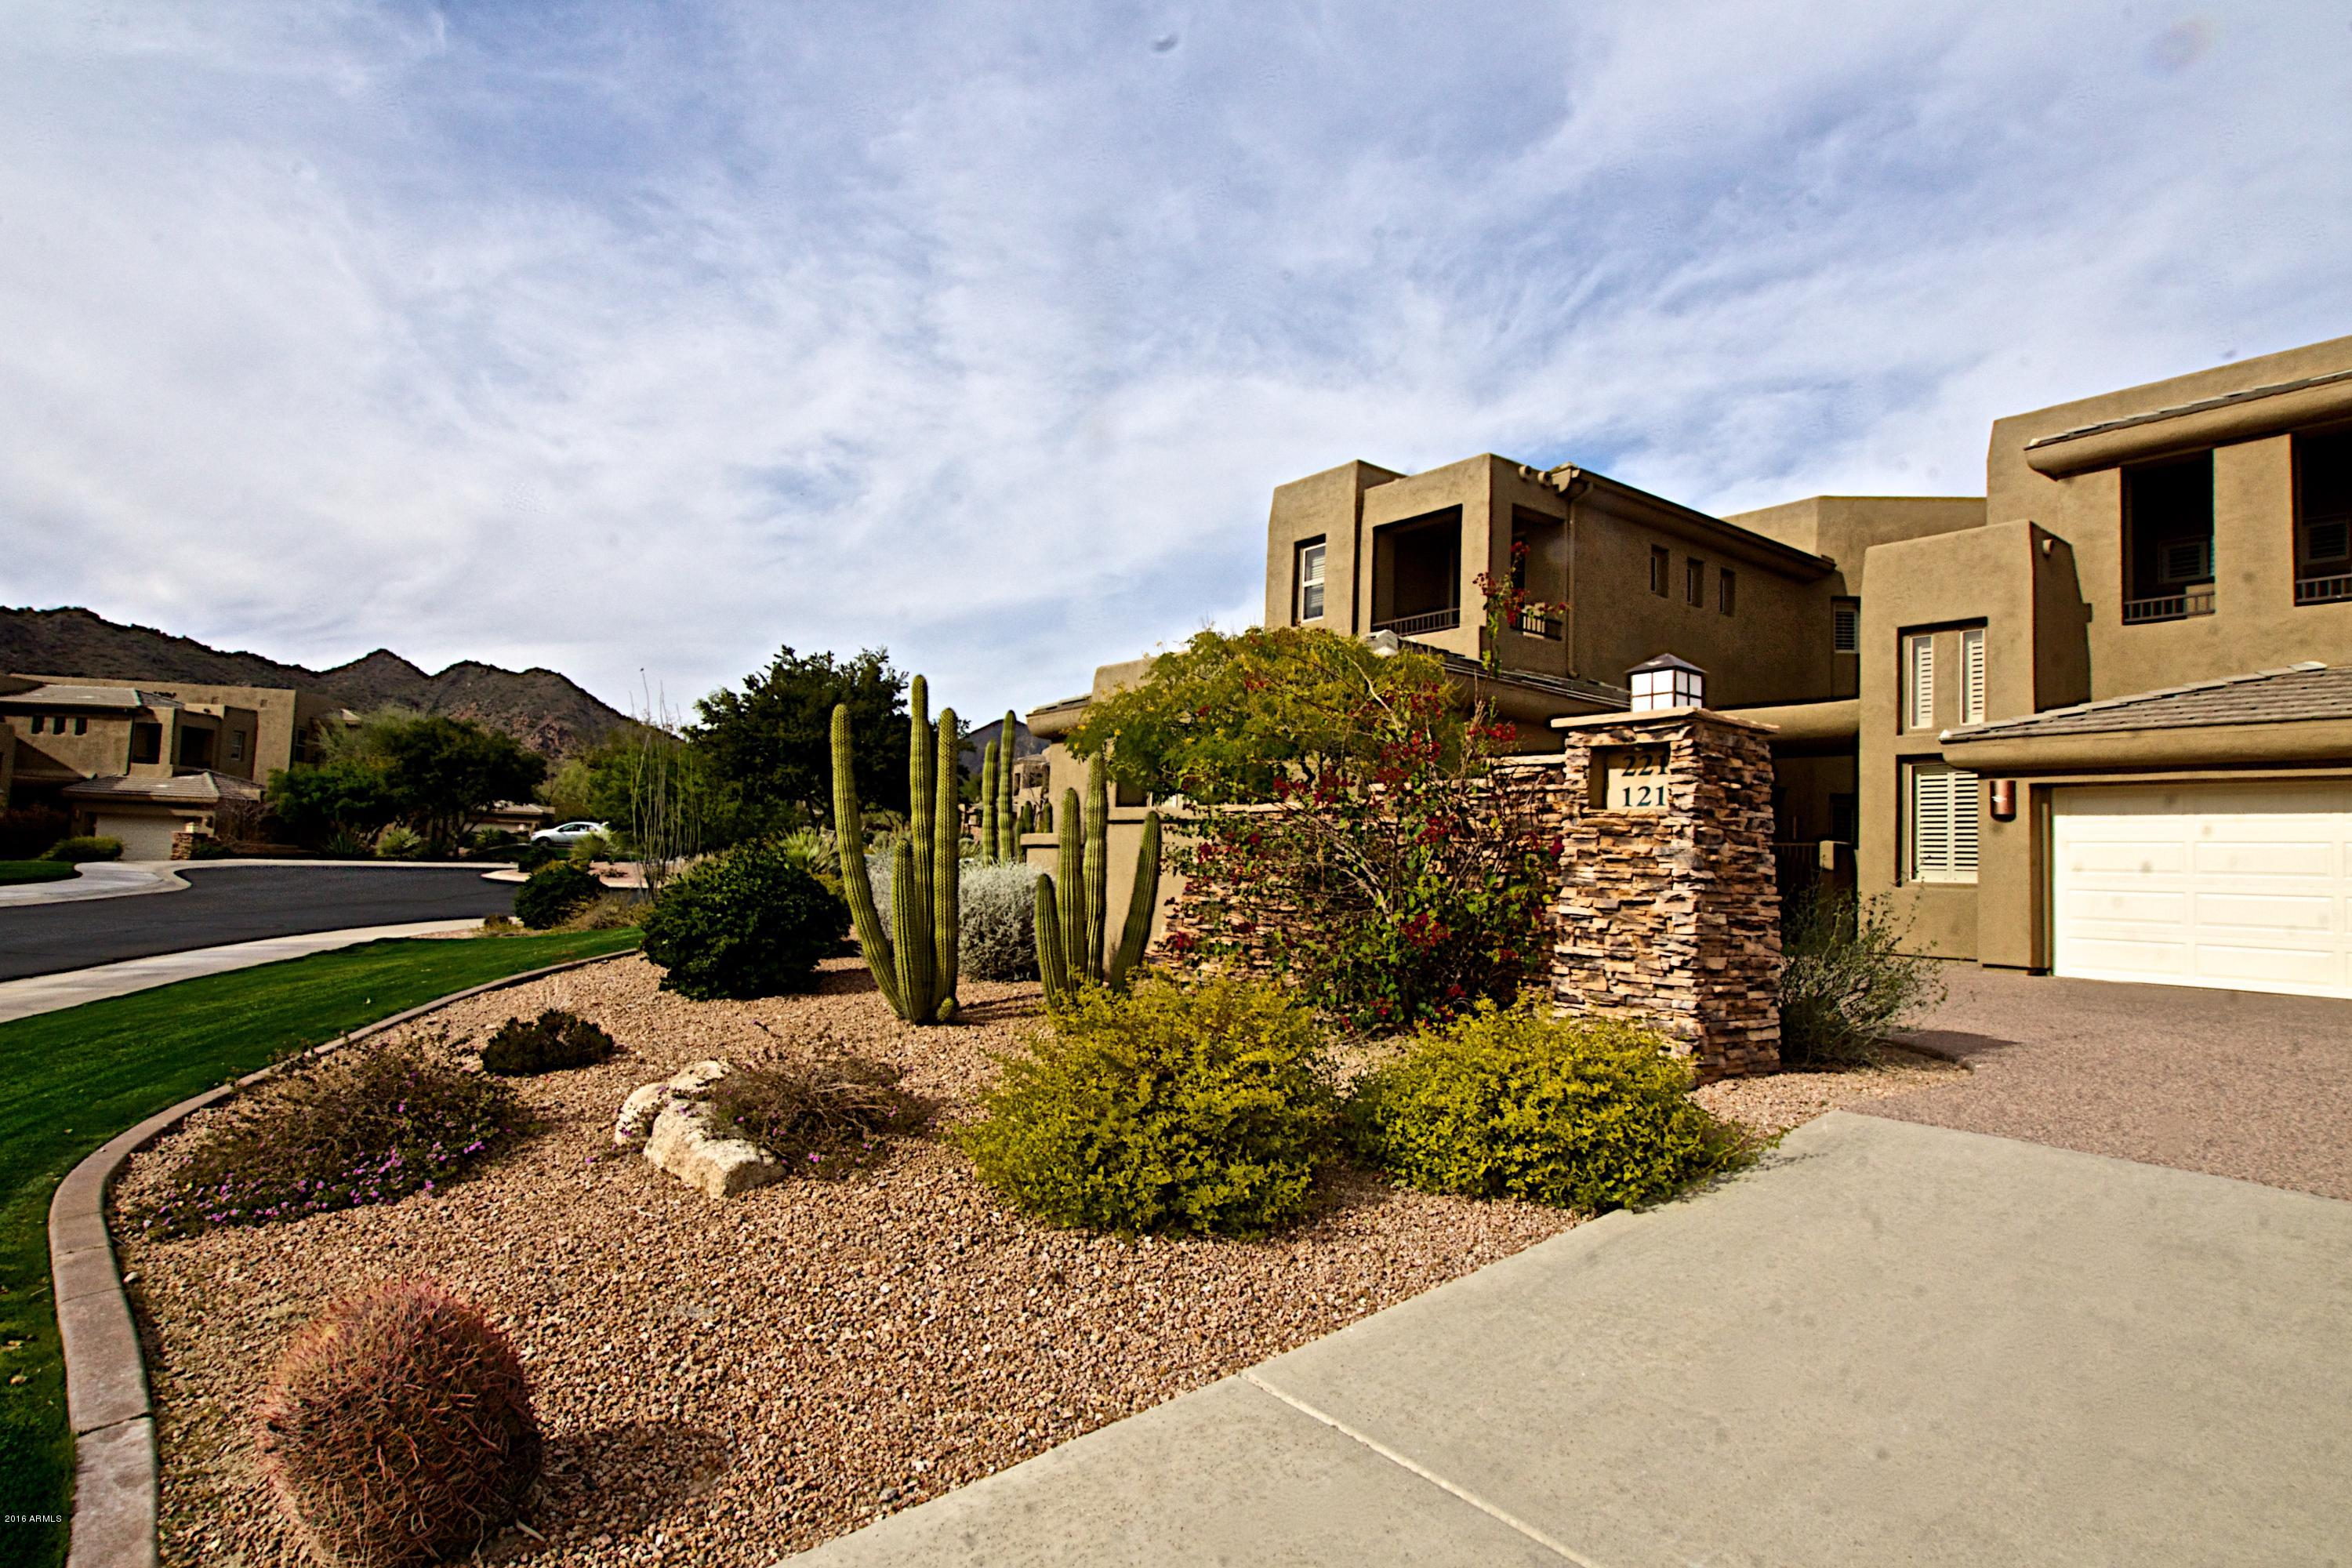 14850 E Grandview Drive E, Unit 221, Fountain Hills AZ 85268